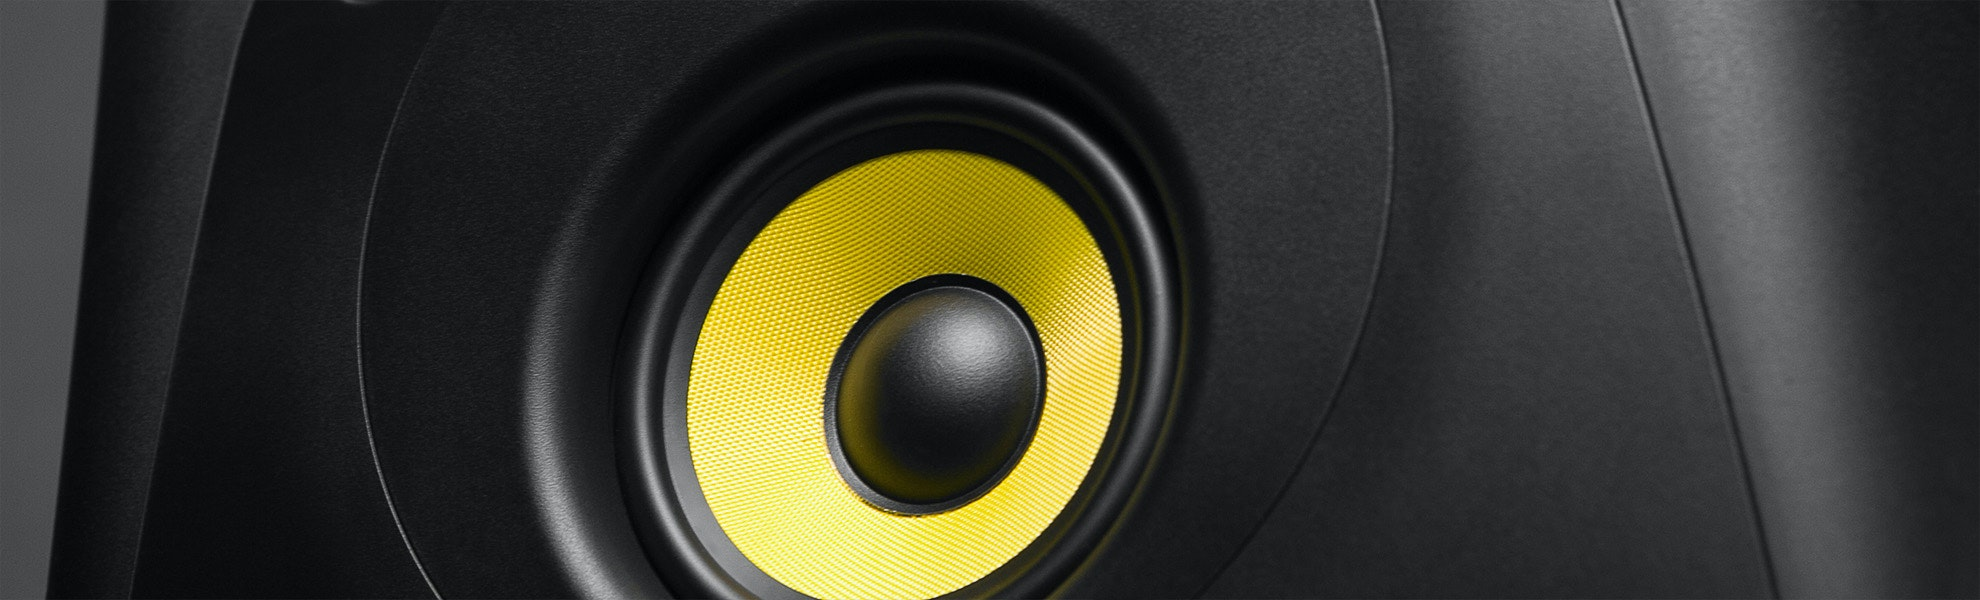 KRK RP10 Three-Way Studio Monitor